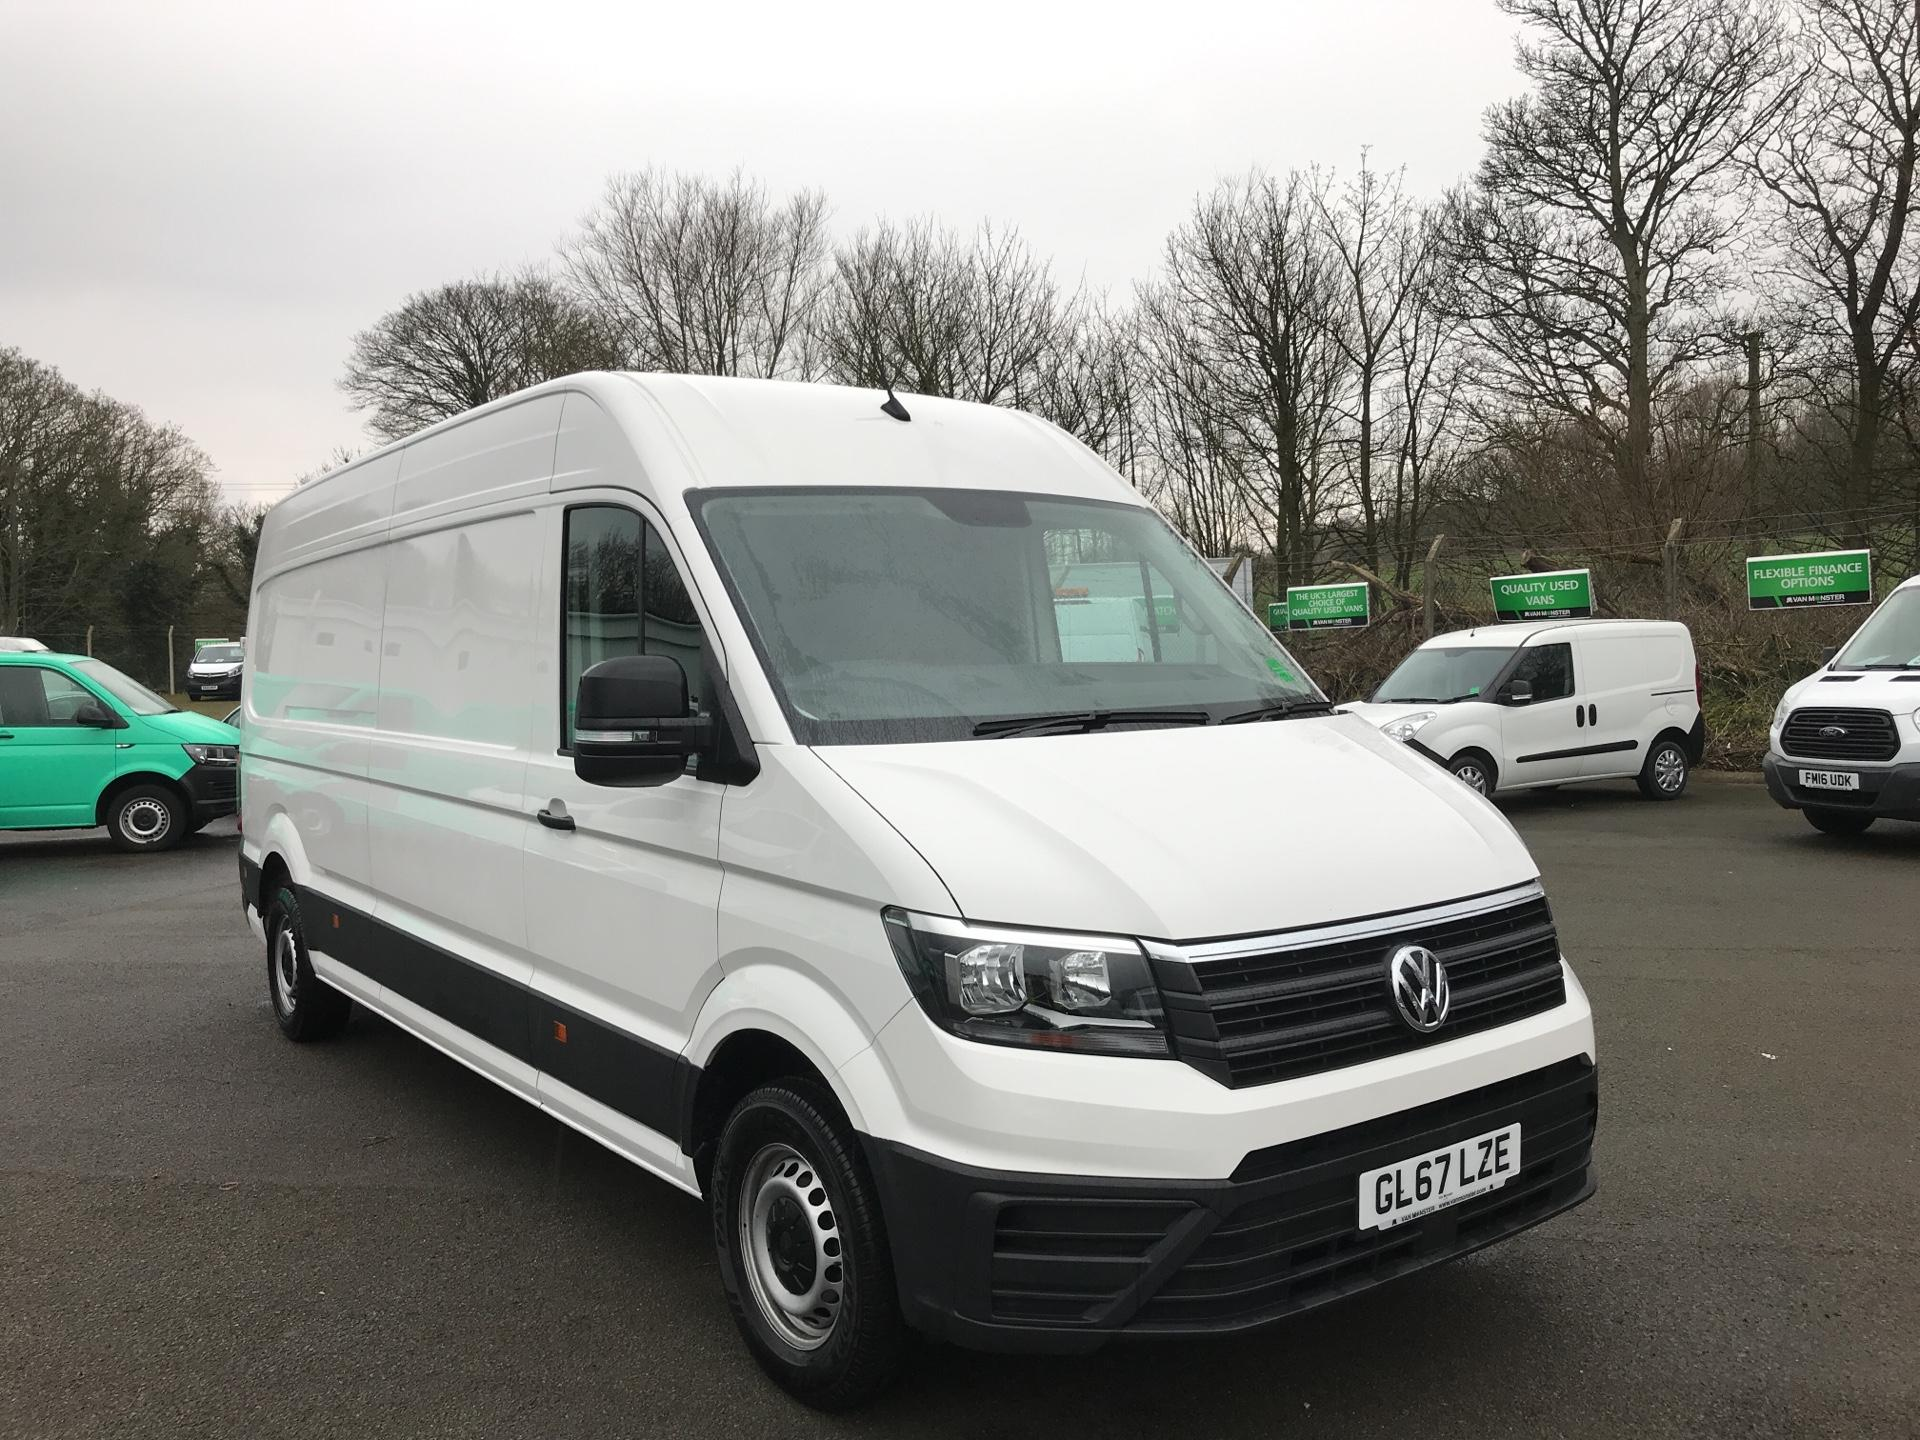 2017 Volkswagen Crafter  CR35 LWB 2.0 TDI 138PS HIGH ROOF EURO 6 (GL67LZE)